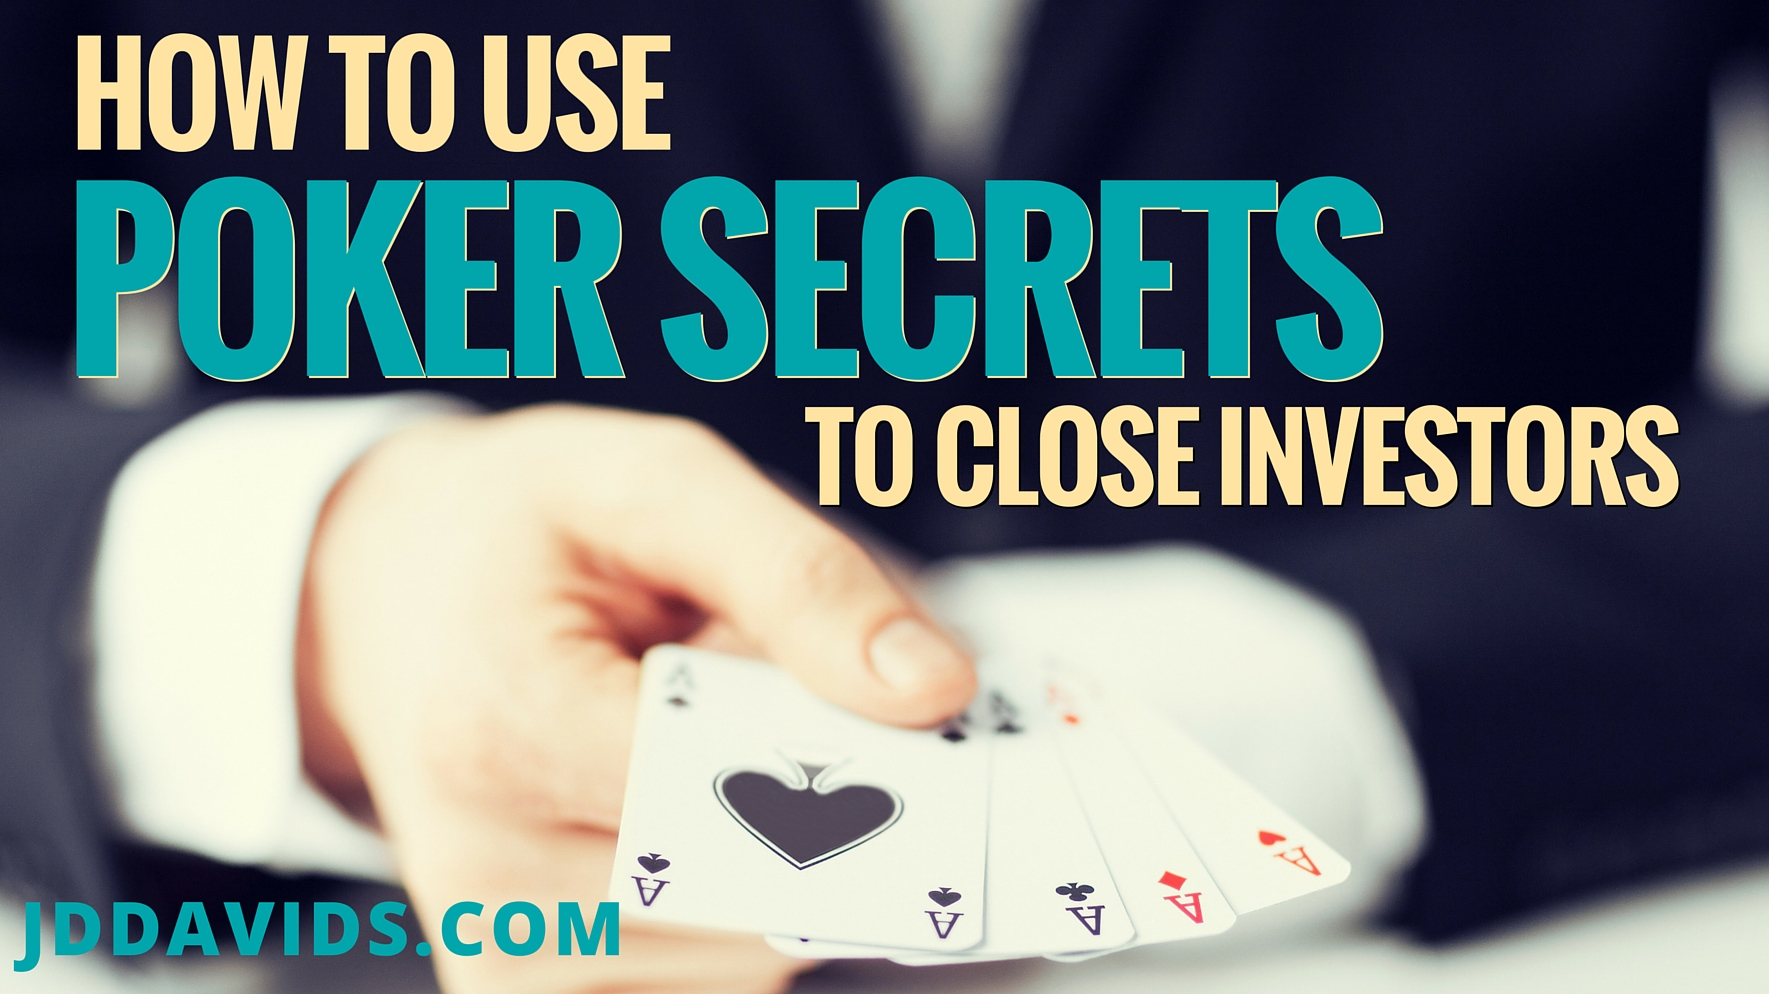 How To Use Poker Secrets To Close Investors